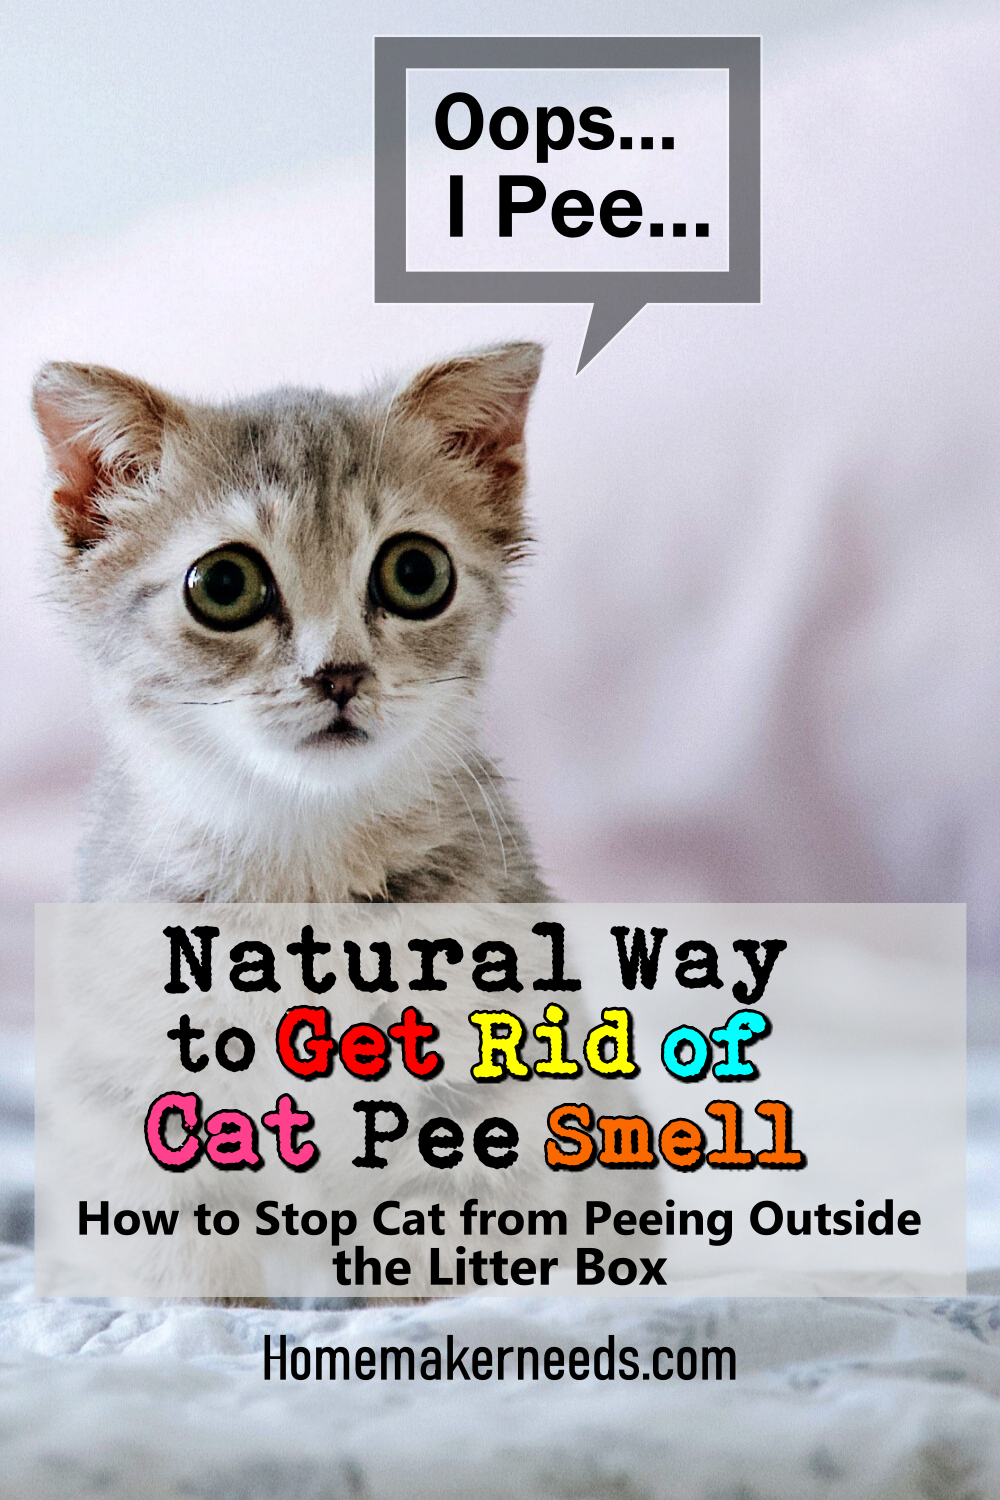 Cat Urine Odor Natural Removal Tips In 2020 Cat Pee Smell Cat Urine Cat Pee